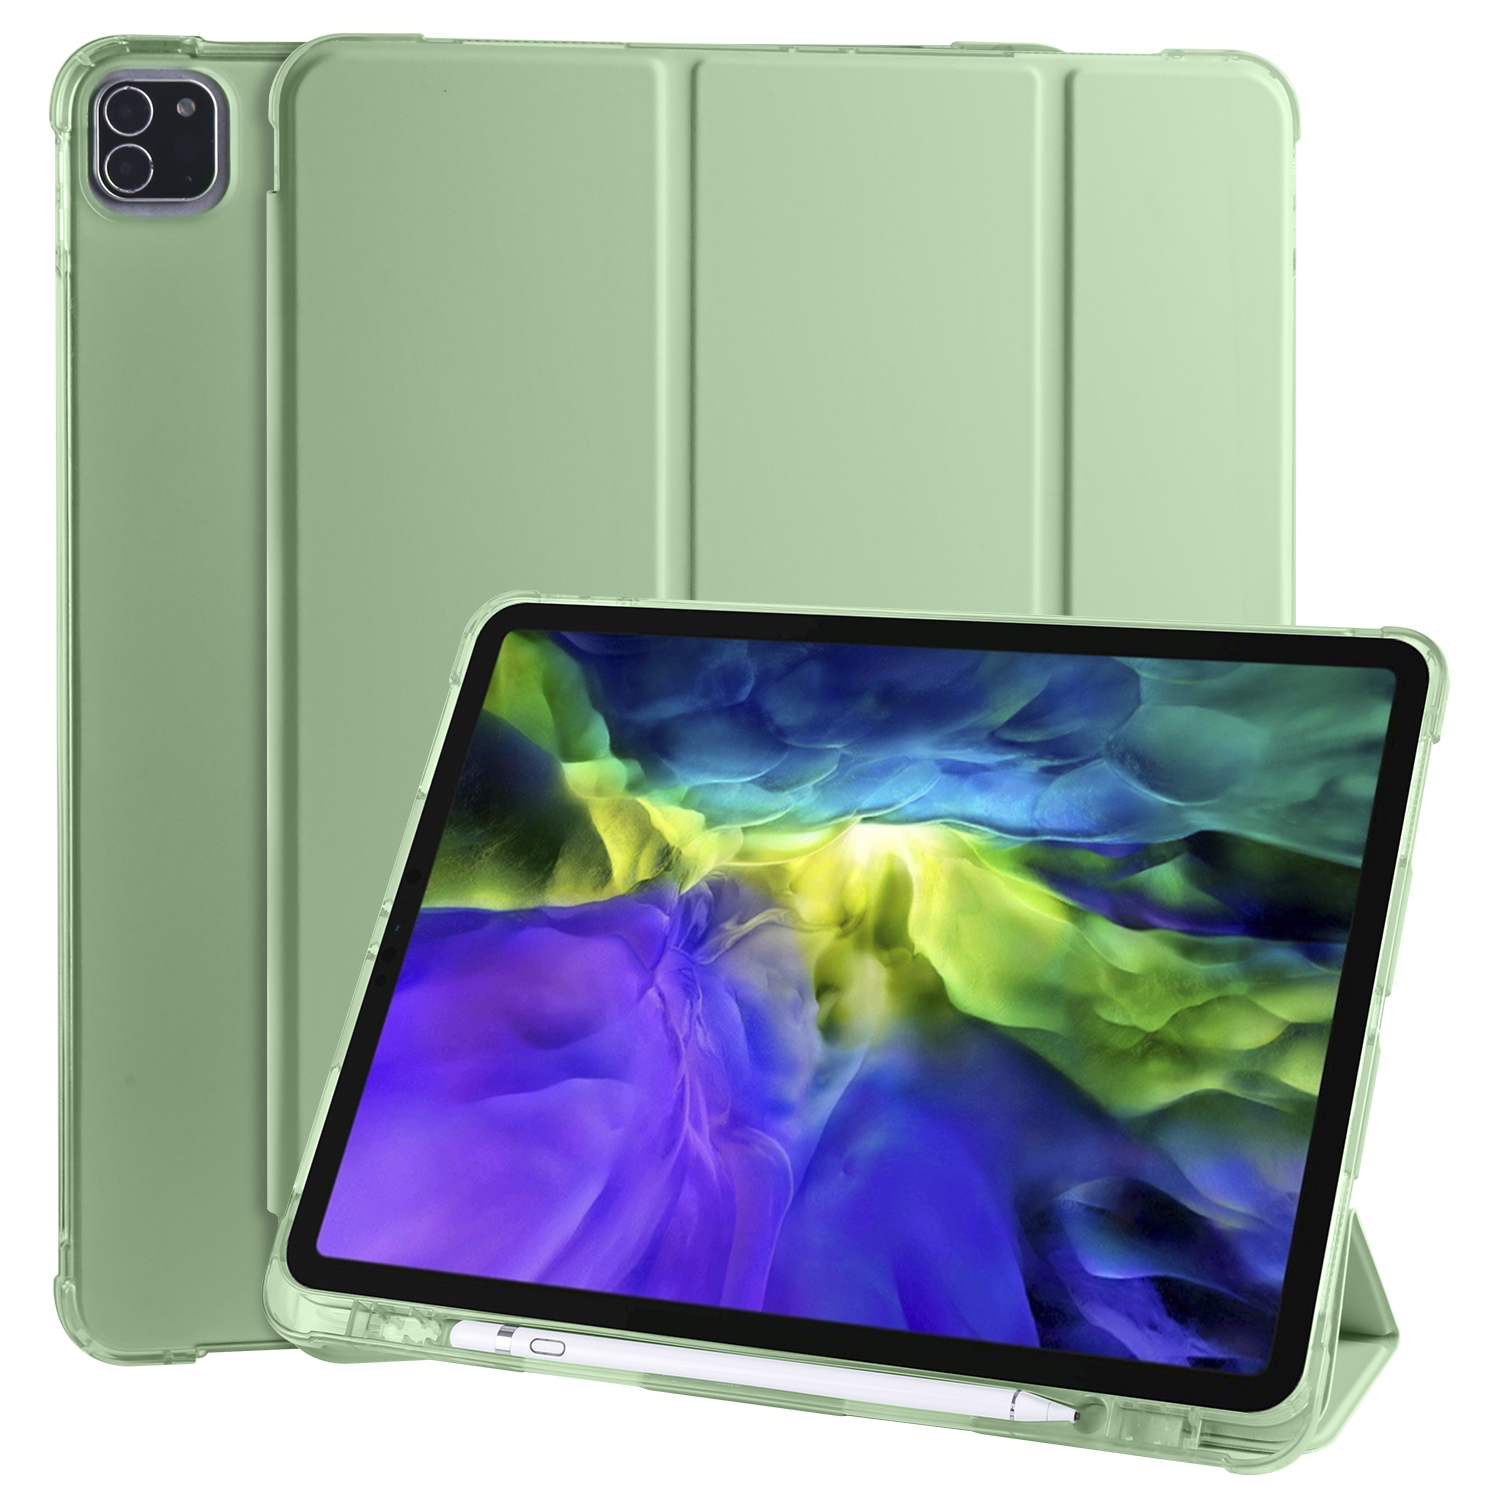 Green Green Smart Soft Shockproof Case for iPad Pro 12 9 2020 2018 3rd 4th Generation with Pen